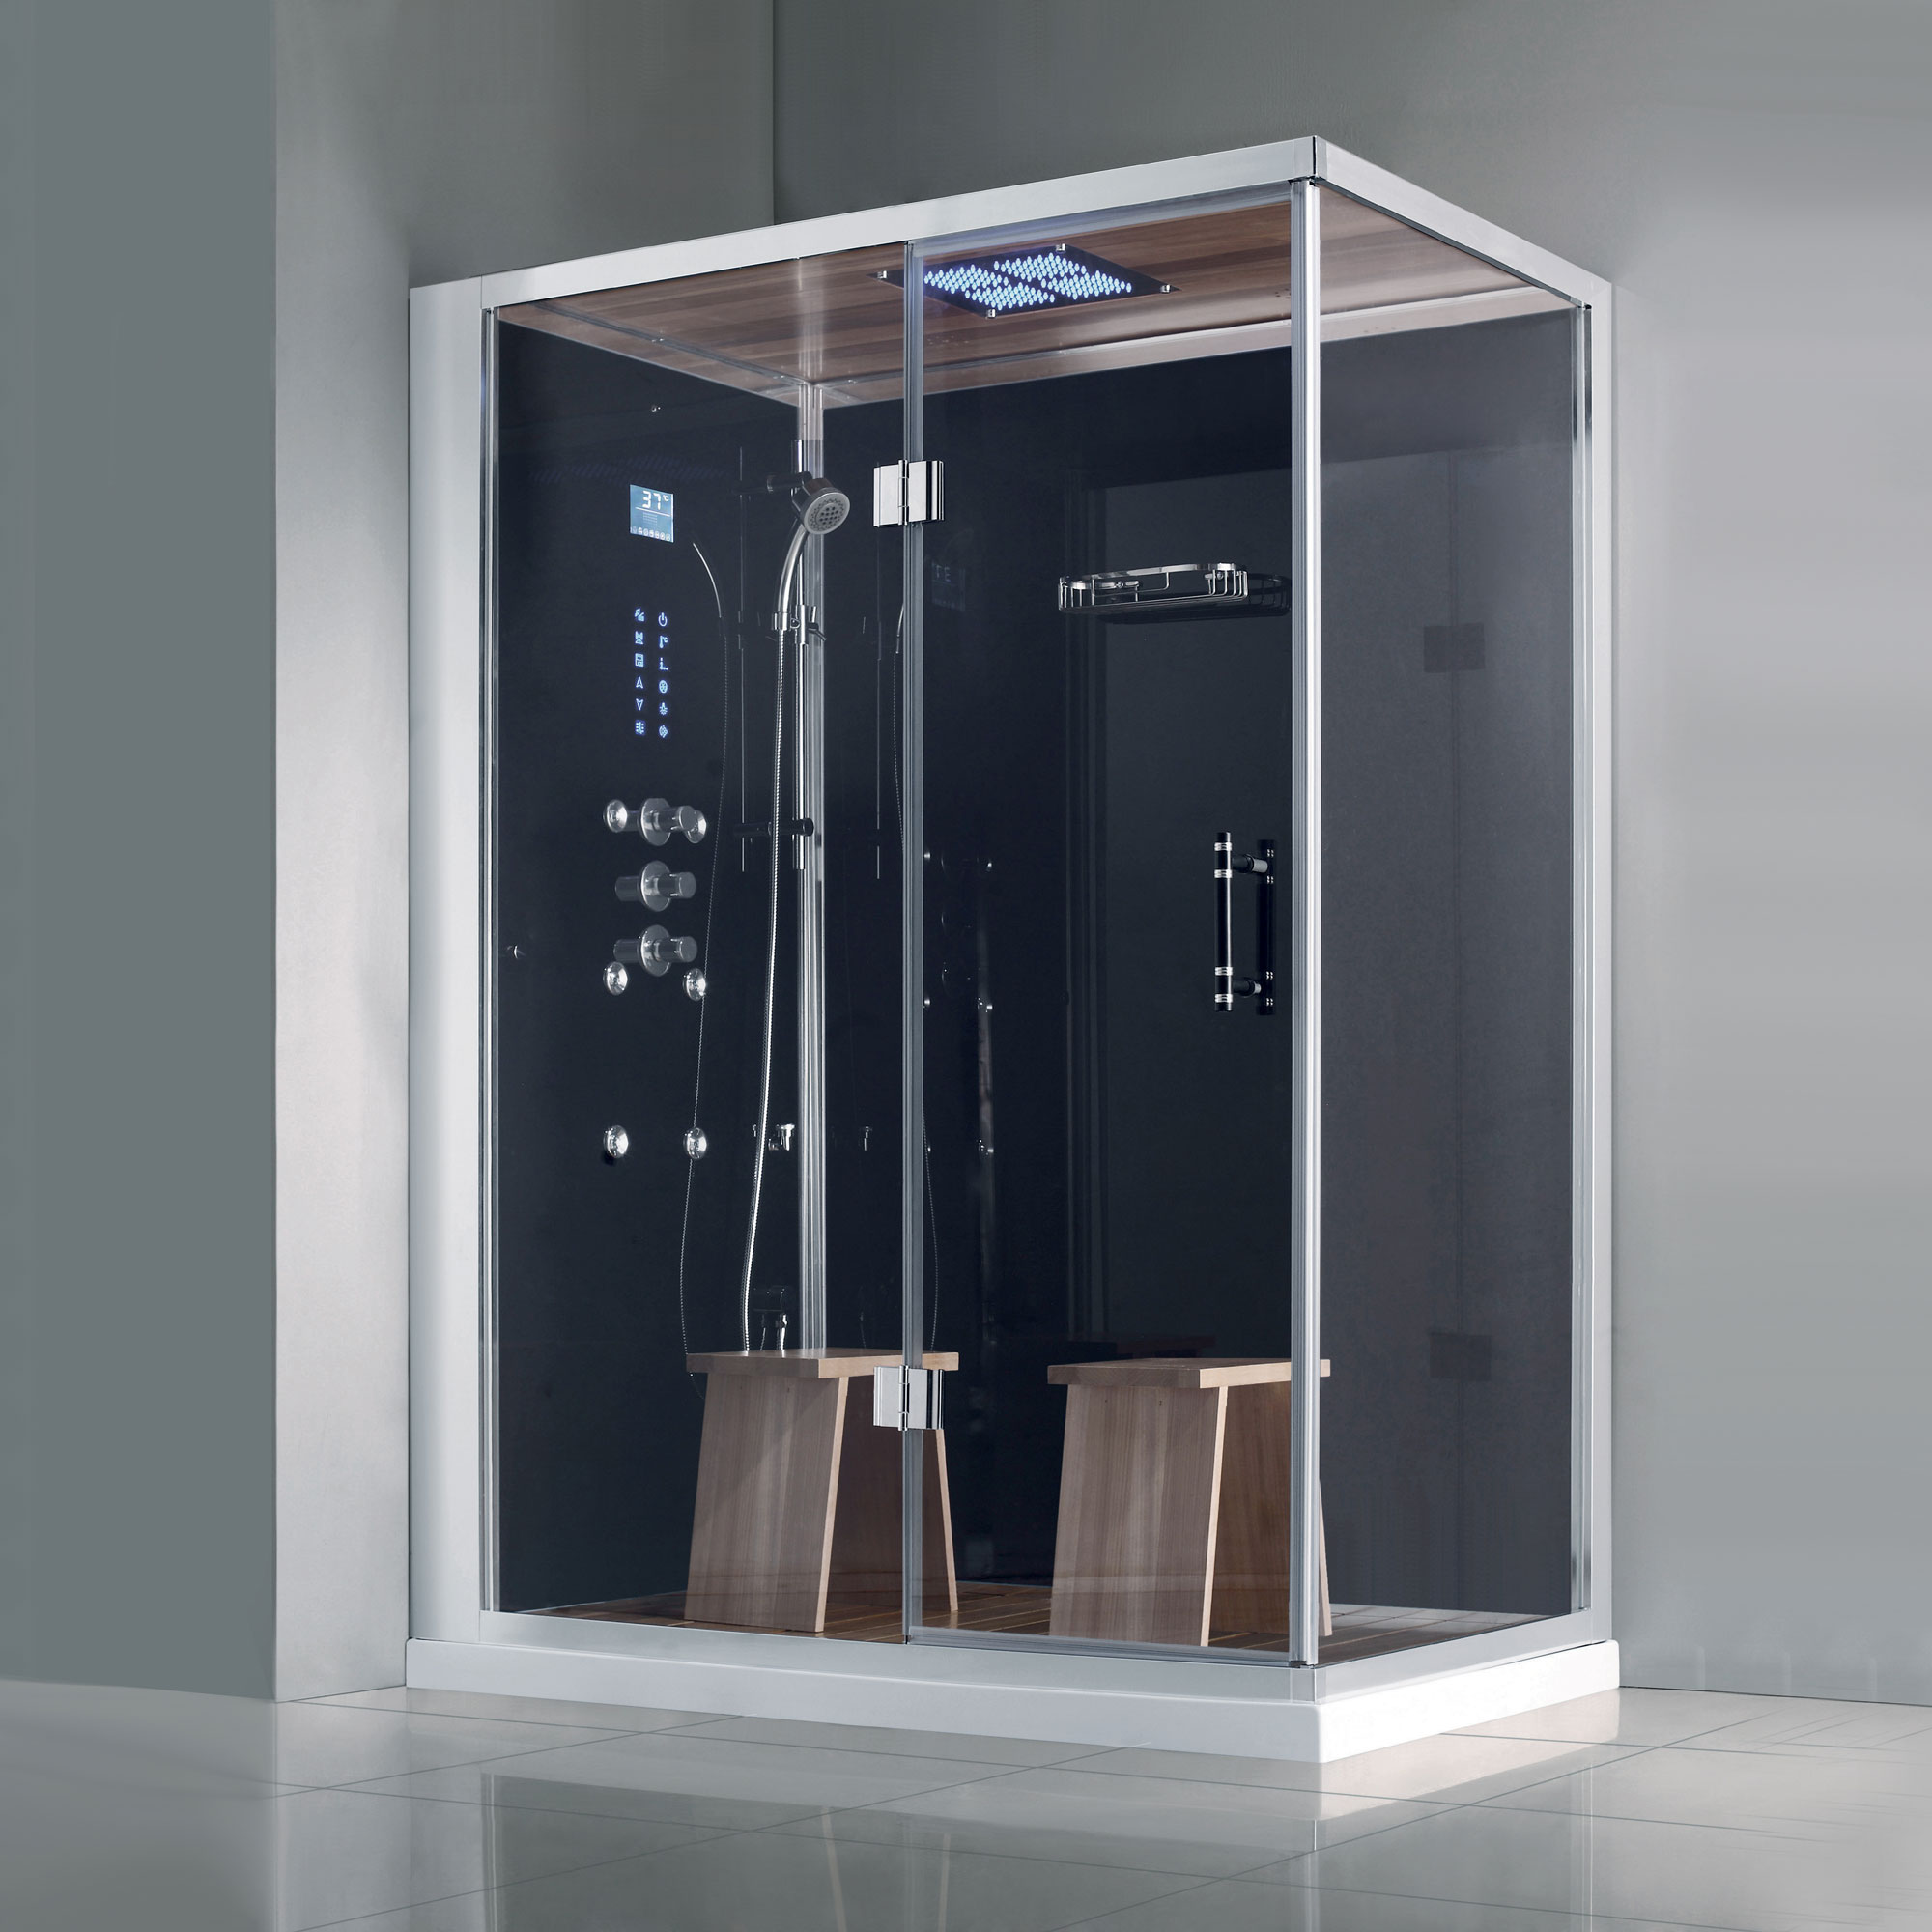 athena ws141r steam shower - Steam Shower Units